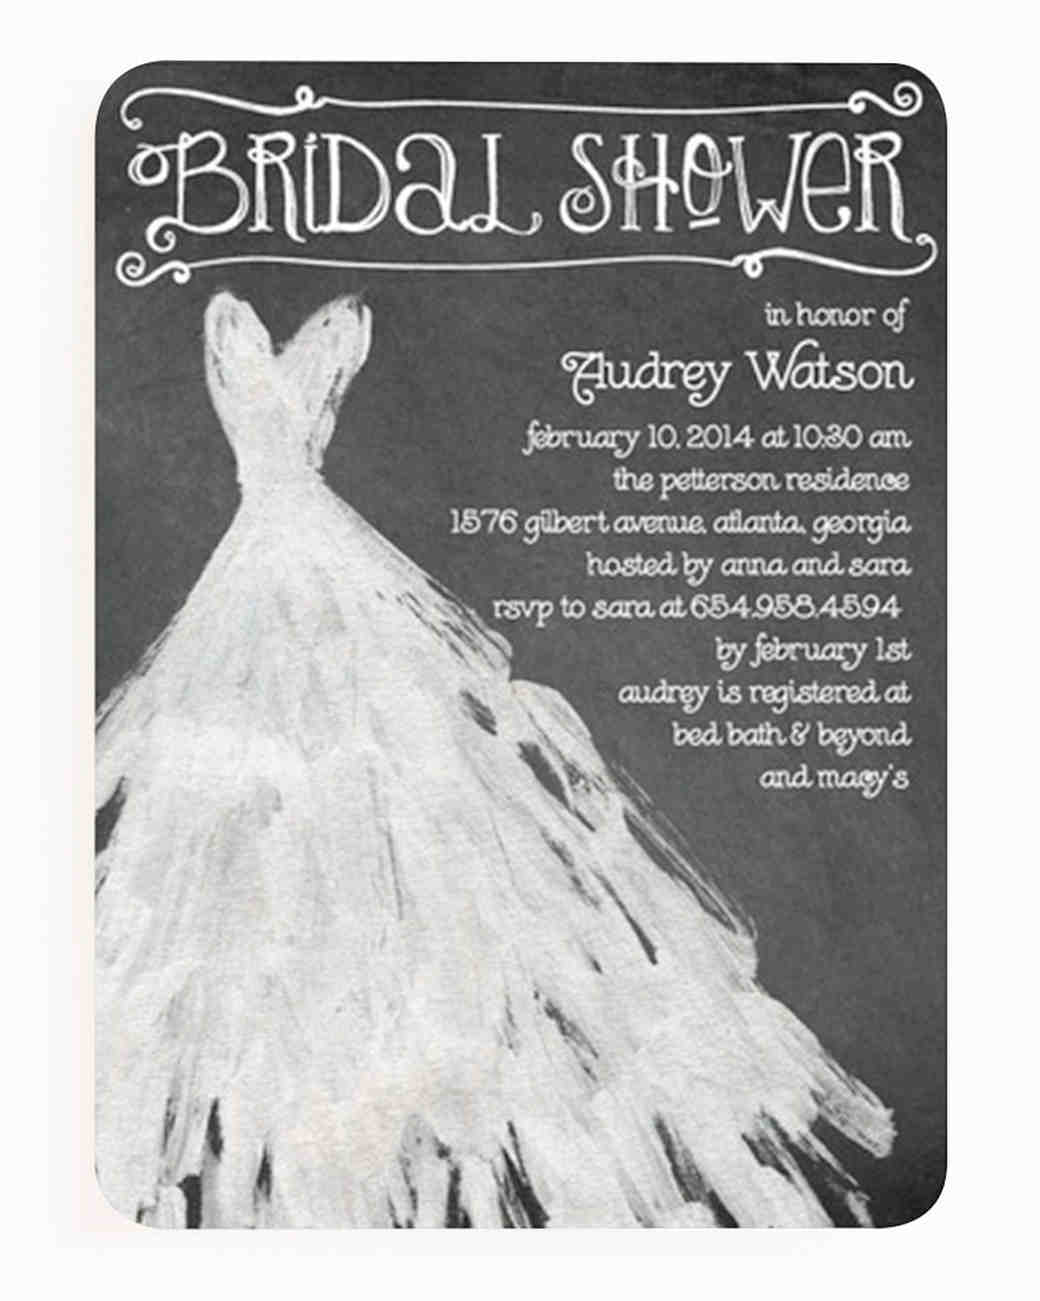 wedding-paper-divas-party-invitations-1135354-forecast-bridal-shower-fun-0914.jpg